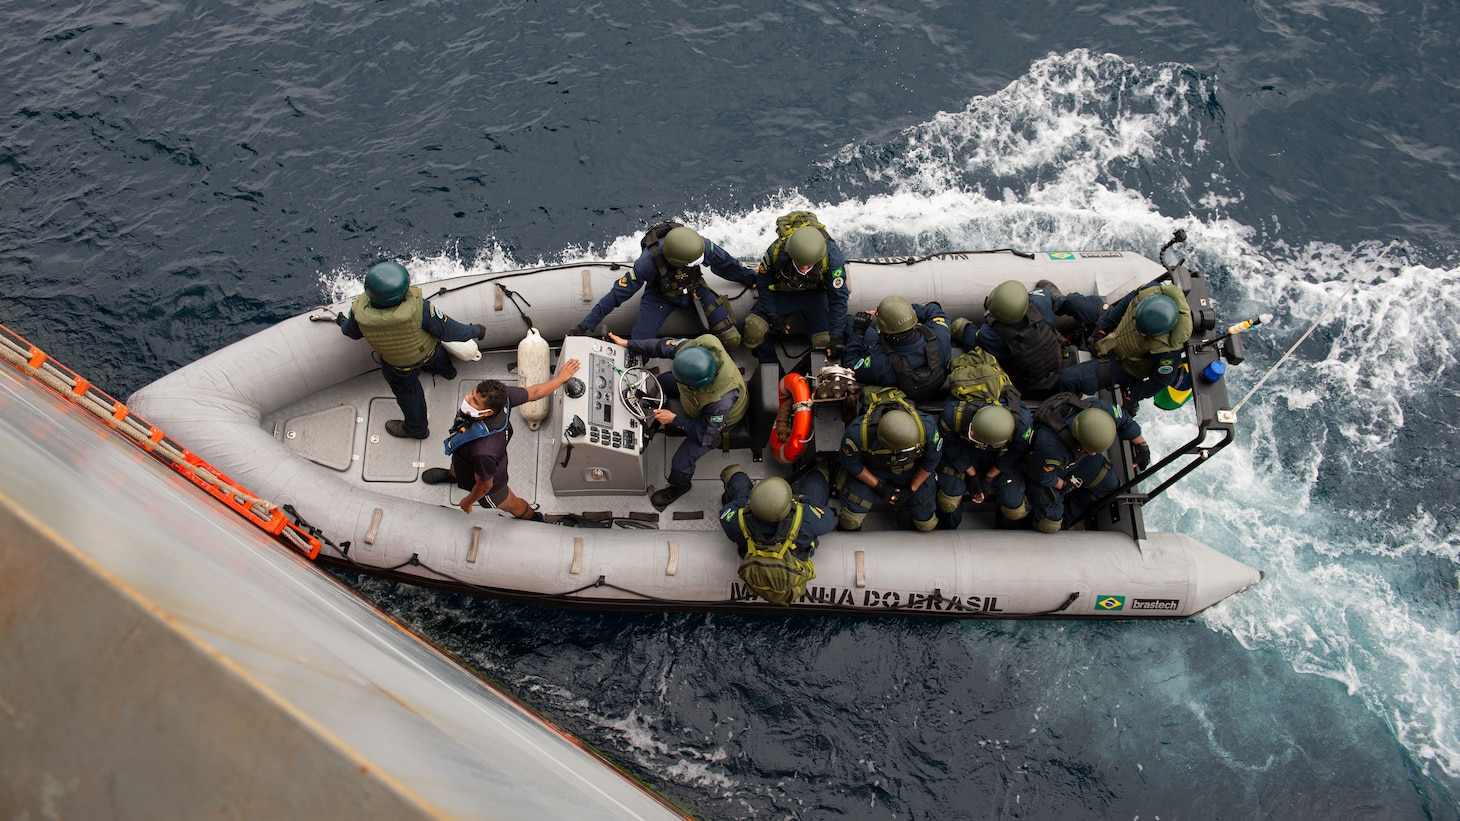 """Members of a Brazilian Navy visit, board, search, and seizure (VBSS) team return to their boat following a drill aboard the Expeditionary Sea Base USS Hershel """"Woody"""" Williams (ESB 4), Aug. 22, 2021. Hershel """"Woody"""" Williams is conducting a maritime security capability exercise to build on its existing partnership with the Brazilian Navy and joint interoperability operations with allies and partners during a scheduled deployment in the U.S. Sixth Fleet area of operations in support of U.S. national interests and security in Europe and Africa."""